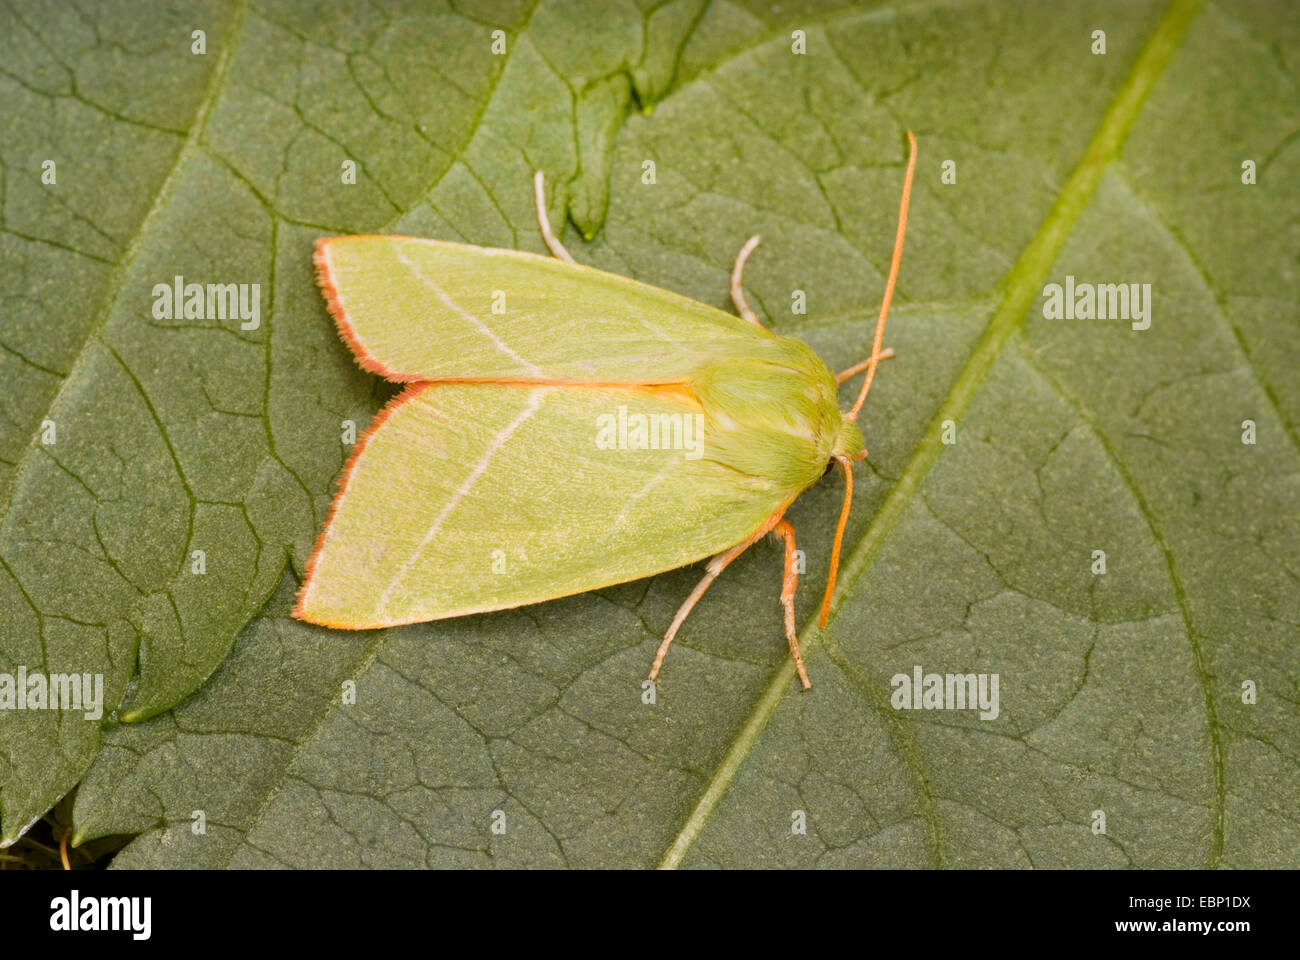 Scarce Silver-lines (Bena bicolorana), sitting on a leaf, Germany - Stock Image